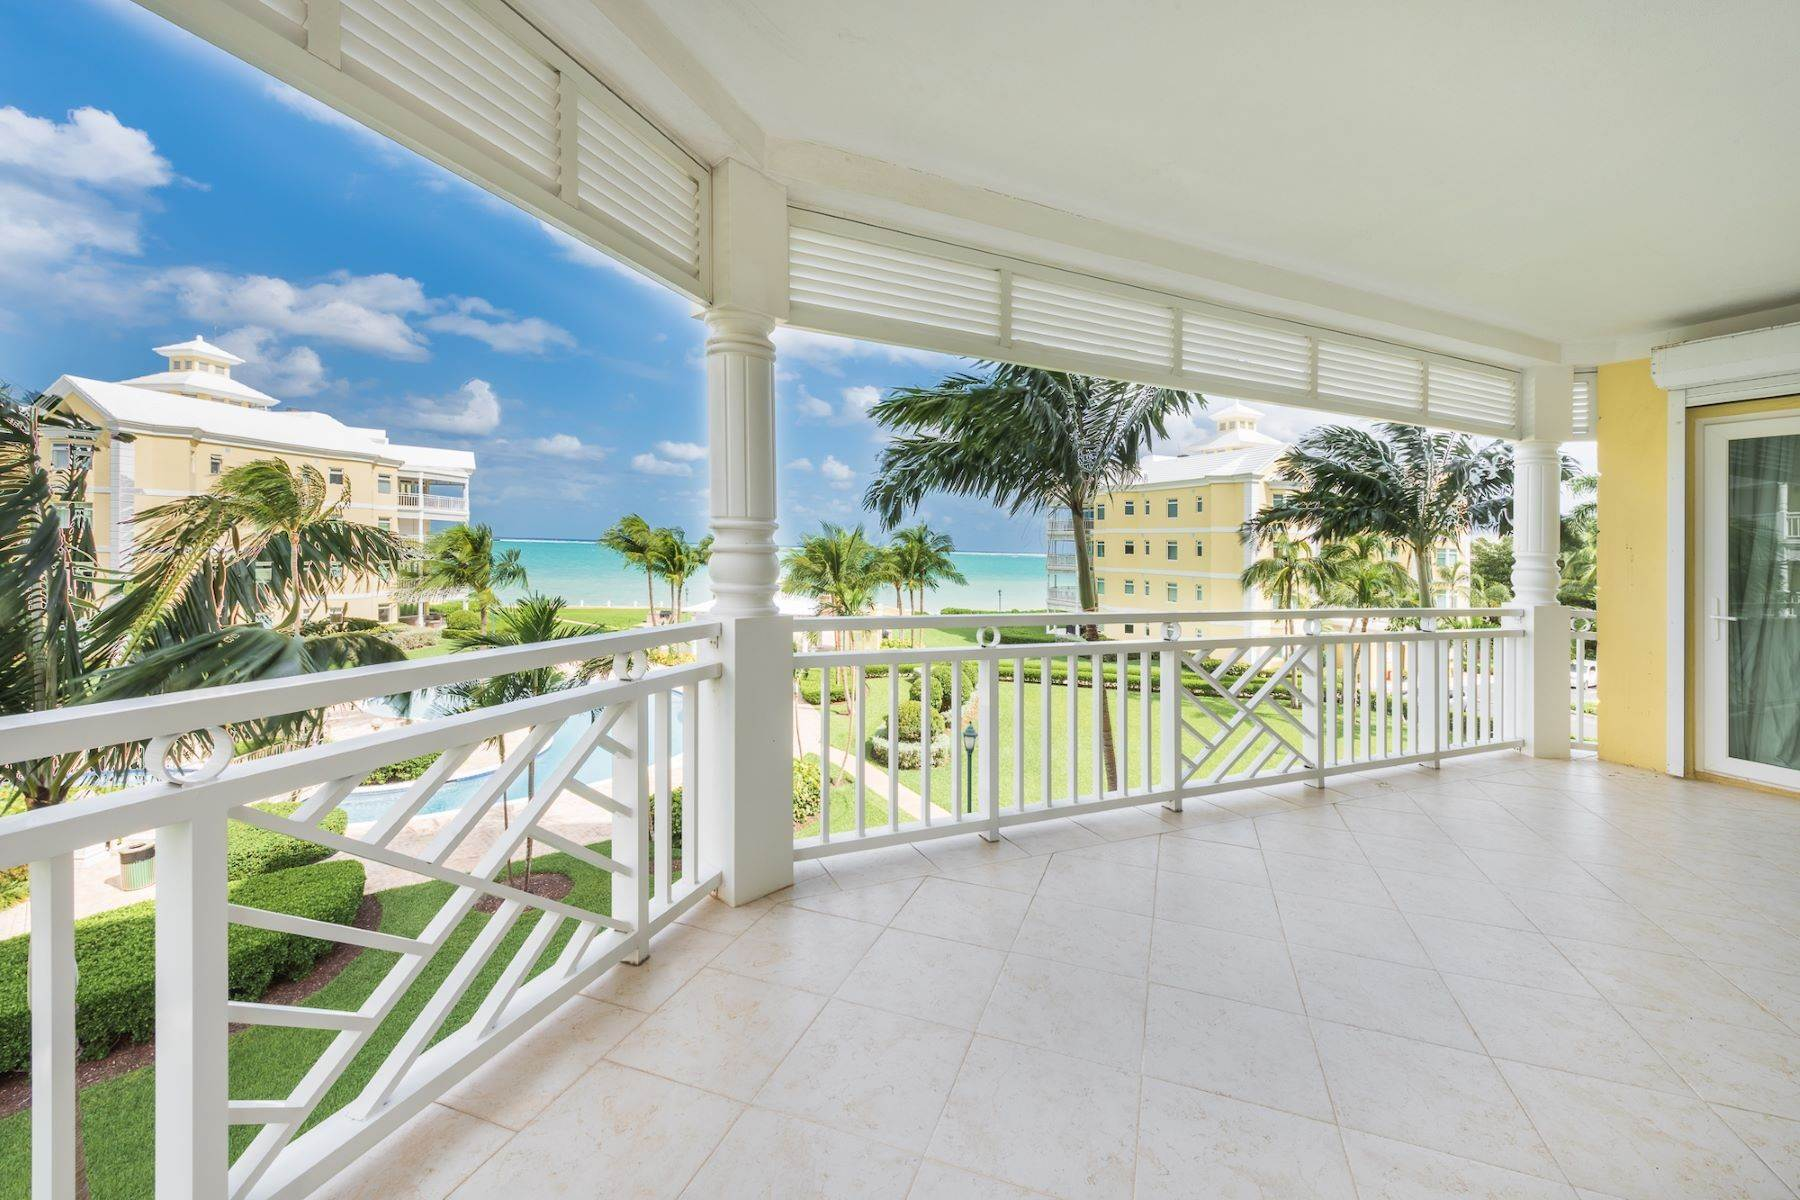 Condominiums for Sale at Bayroc, Roc Tower Bayroc, Cable Beach, Nassau And Paradise Island Bahamas